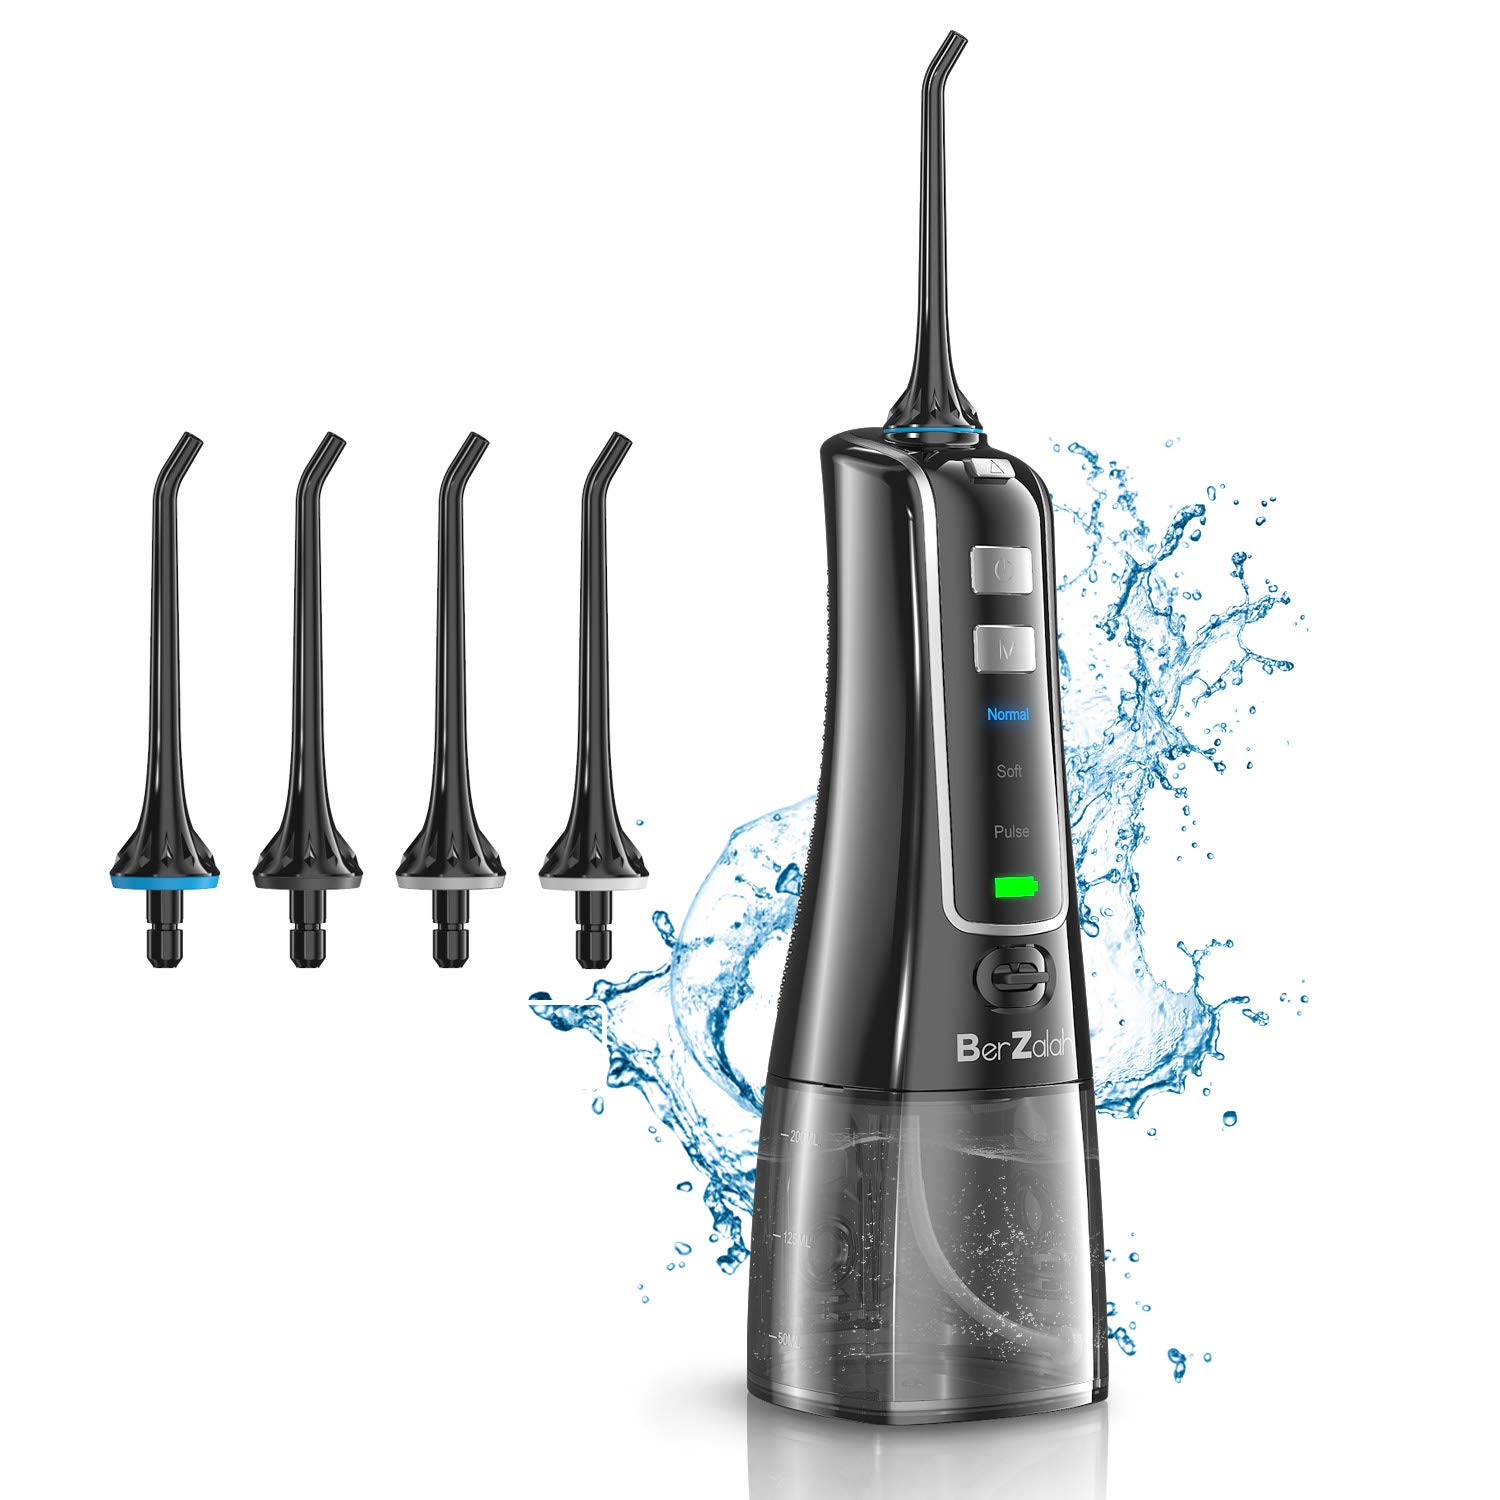 BerZalah Water Flosser Cordless Water Flosser with 3 Modes & 4 Tips, Portable Oral Irrigator for Home, Office, and Travel, High-frequency Pulsation for Braces & Bridges Care, IPX7 Waterproof, 300ML by BerZalah